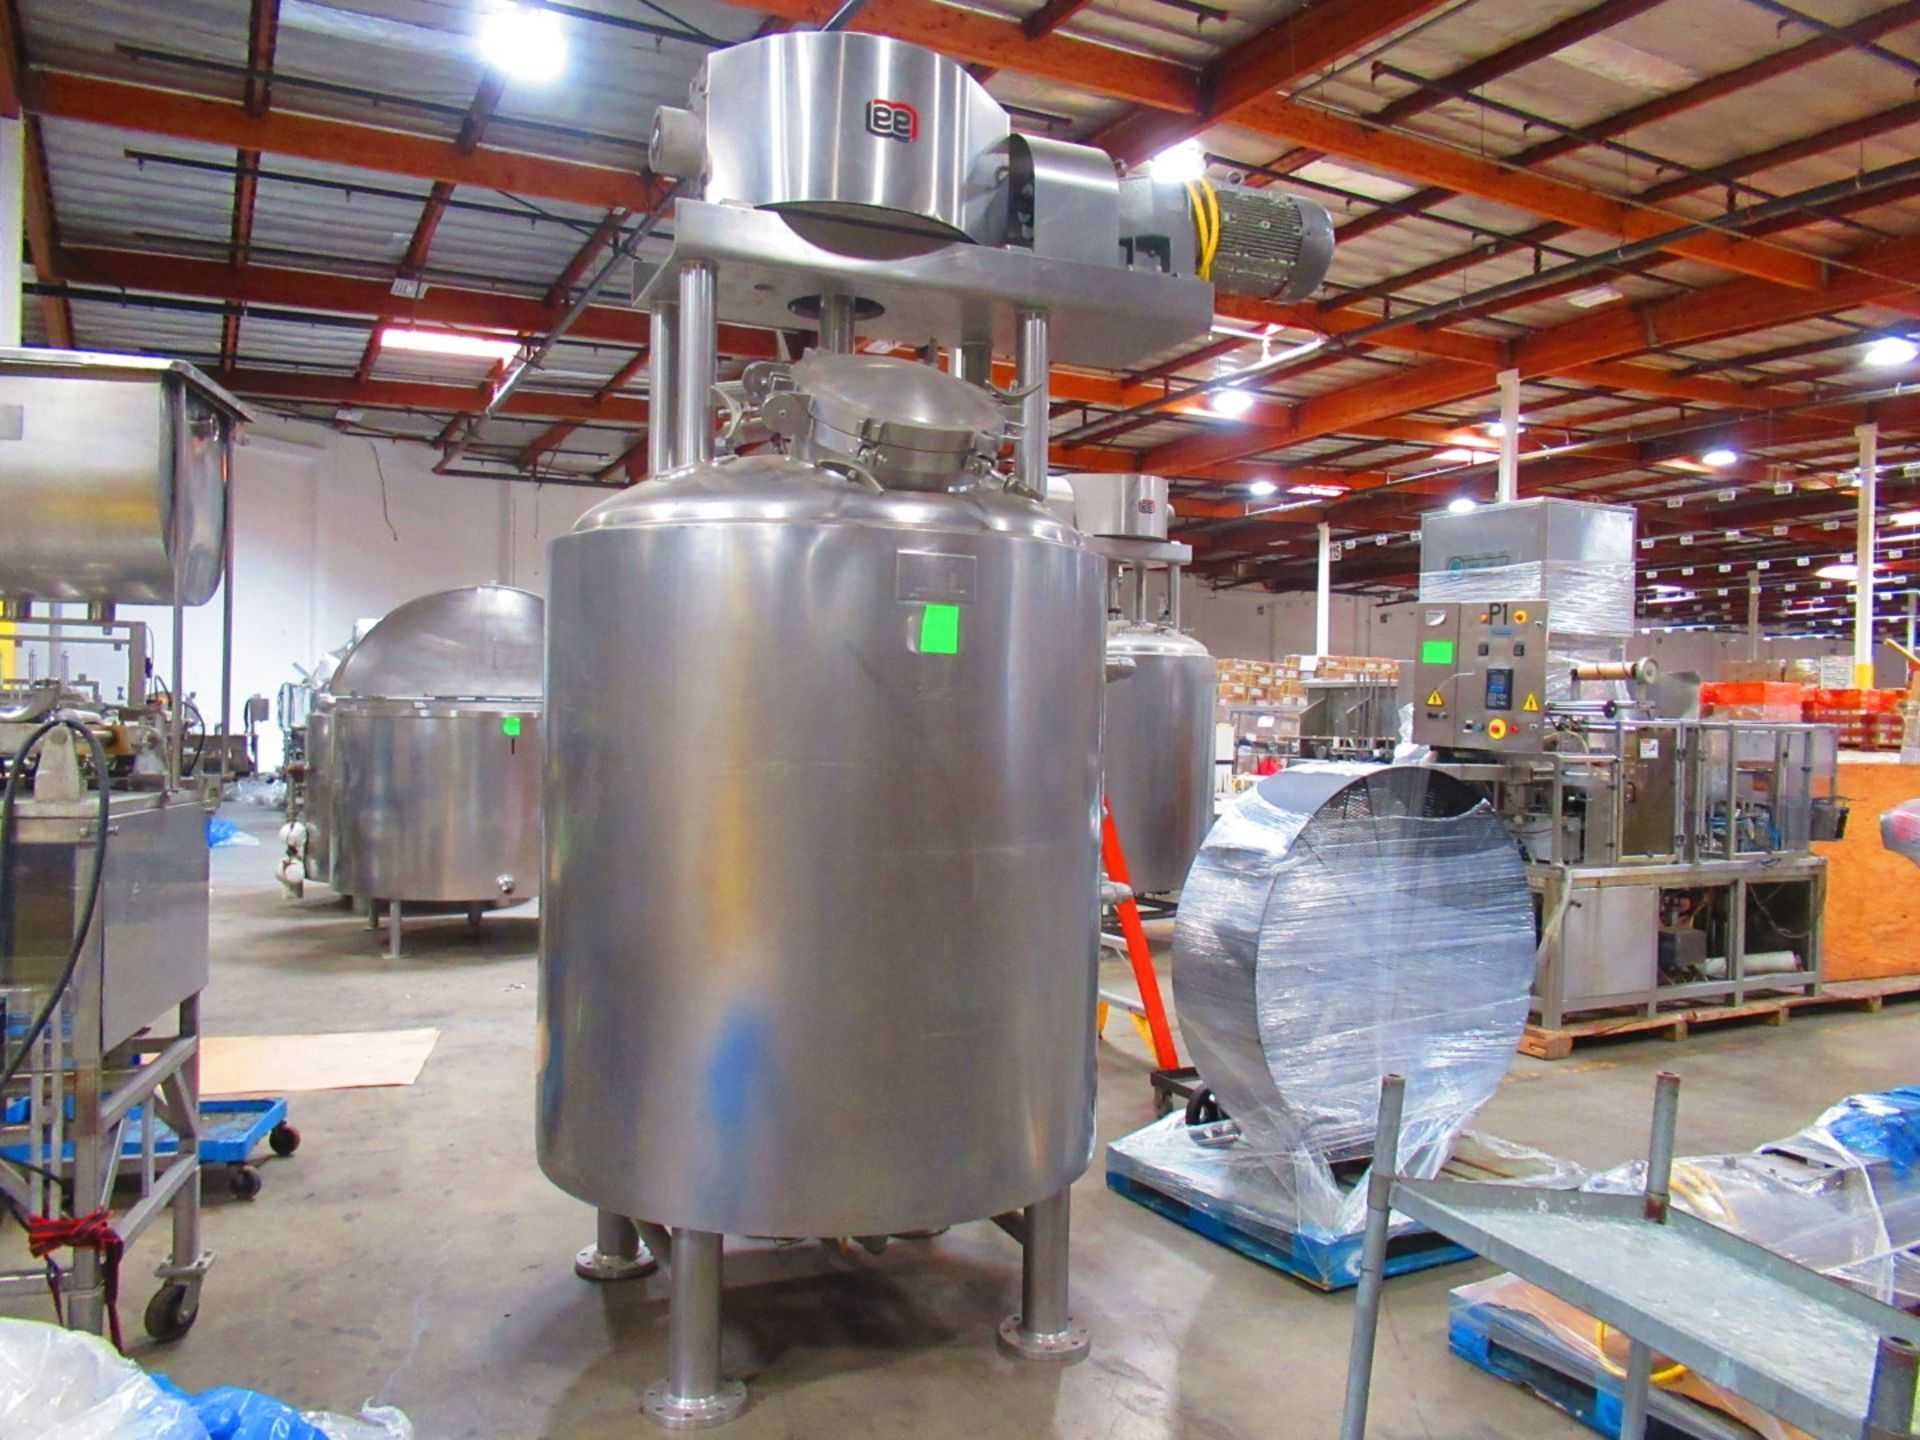 Jacketed Mix Tank - Image 2 of 6